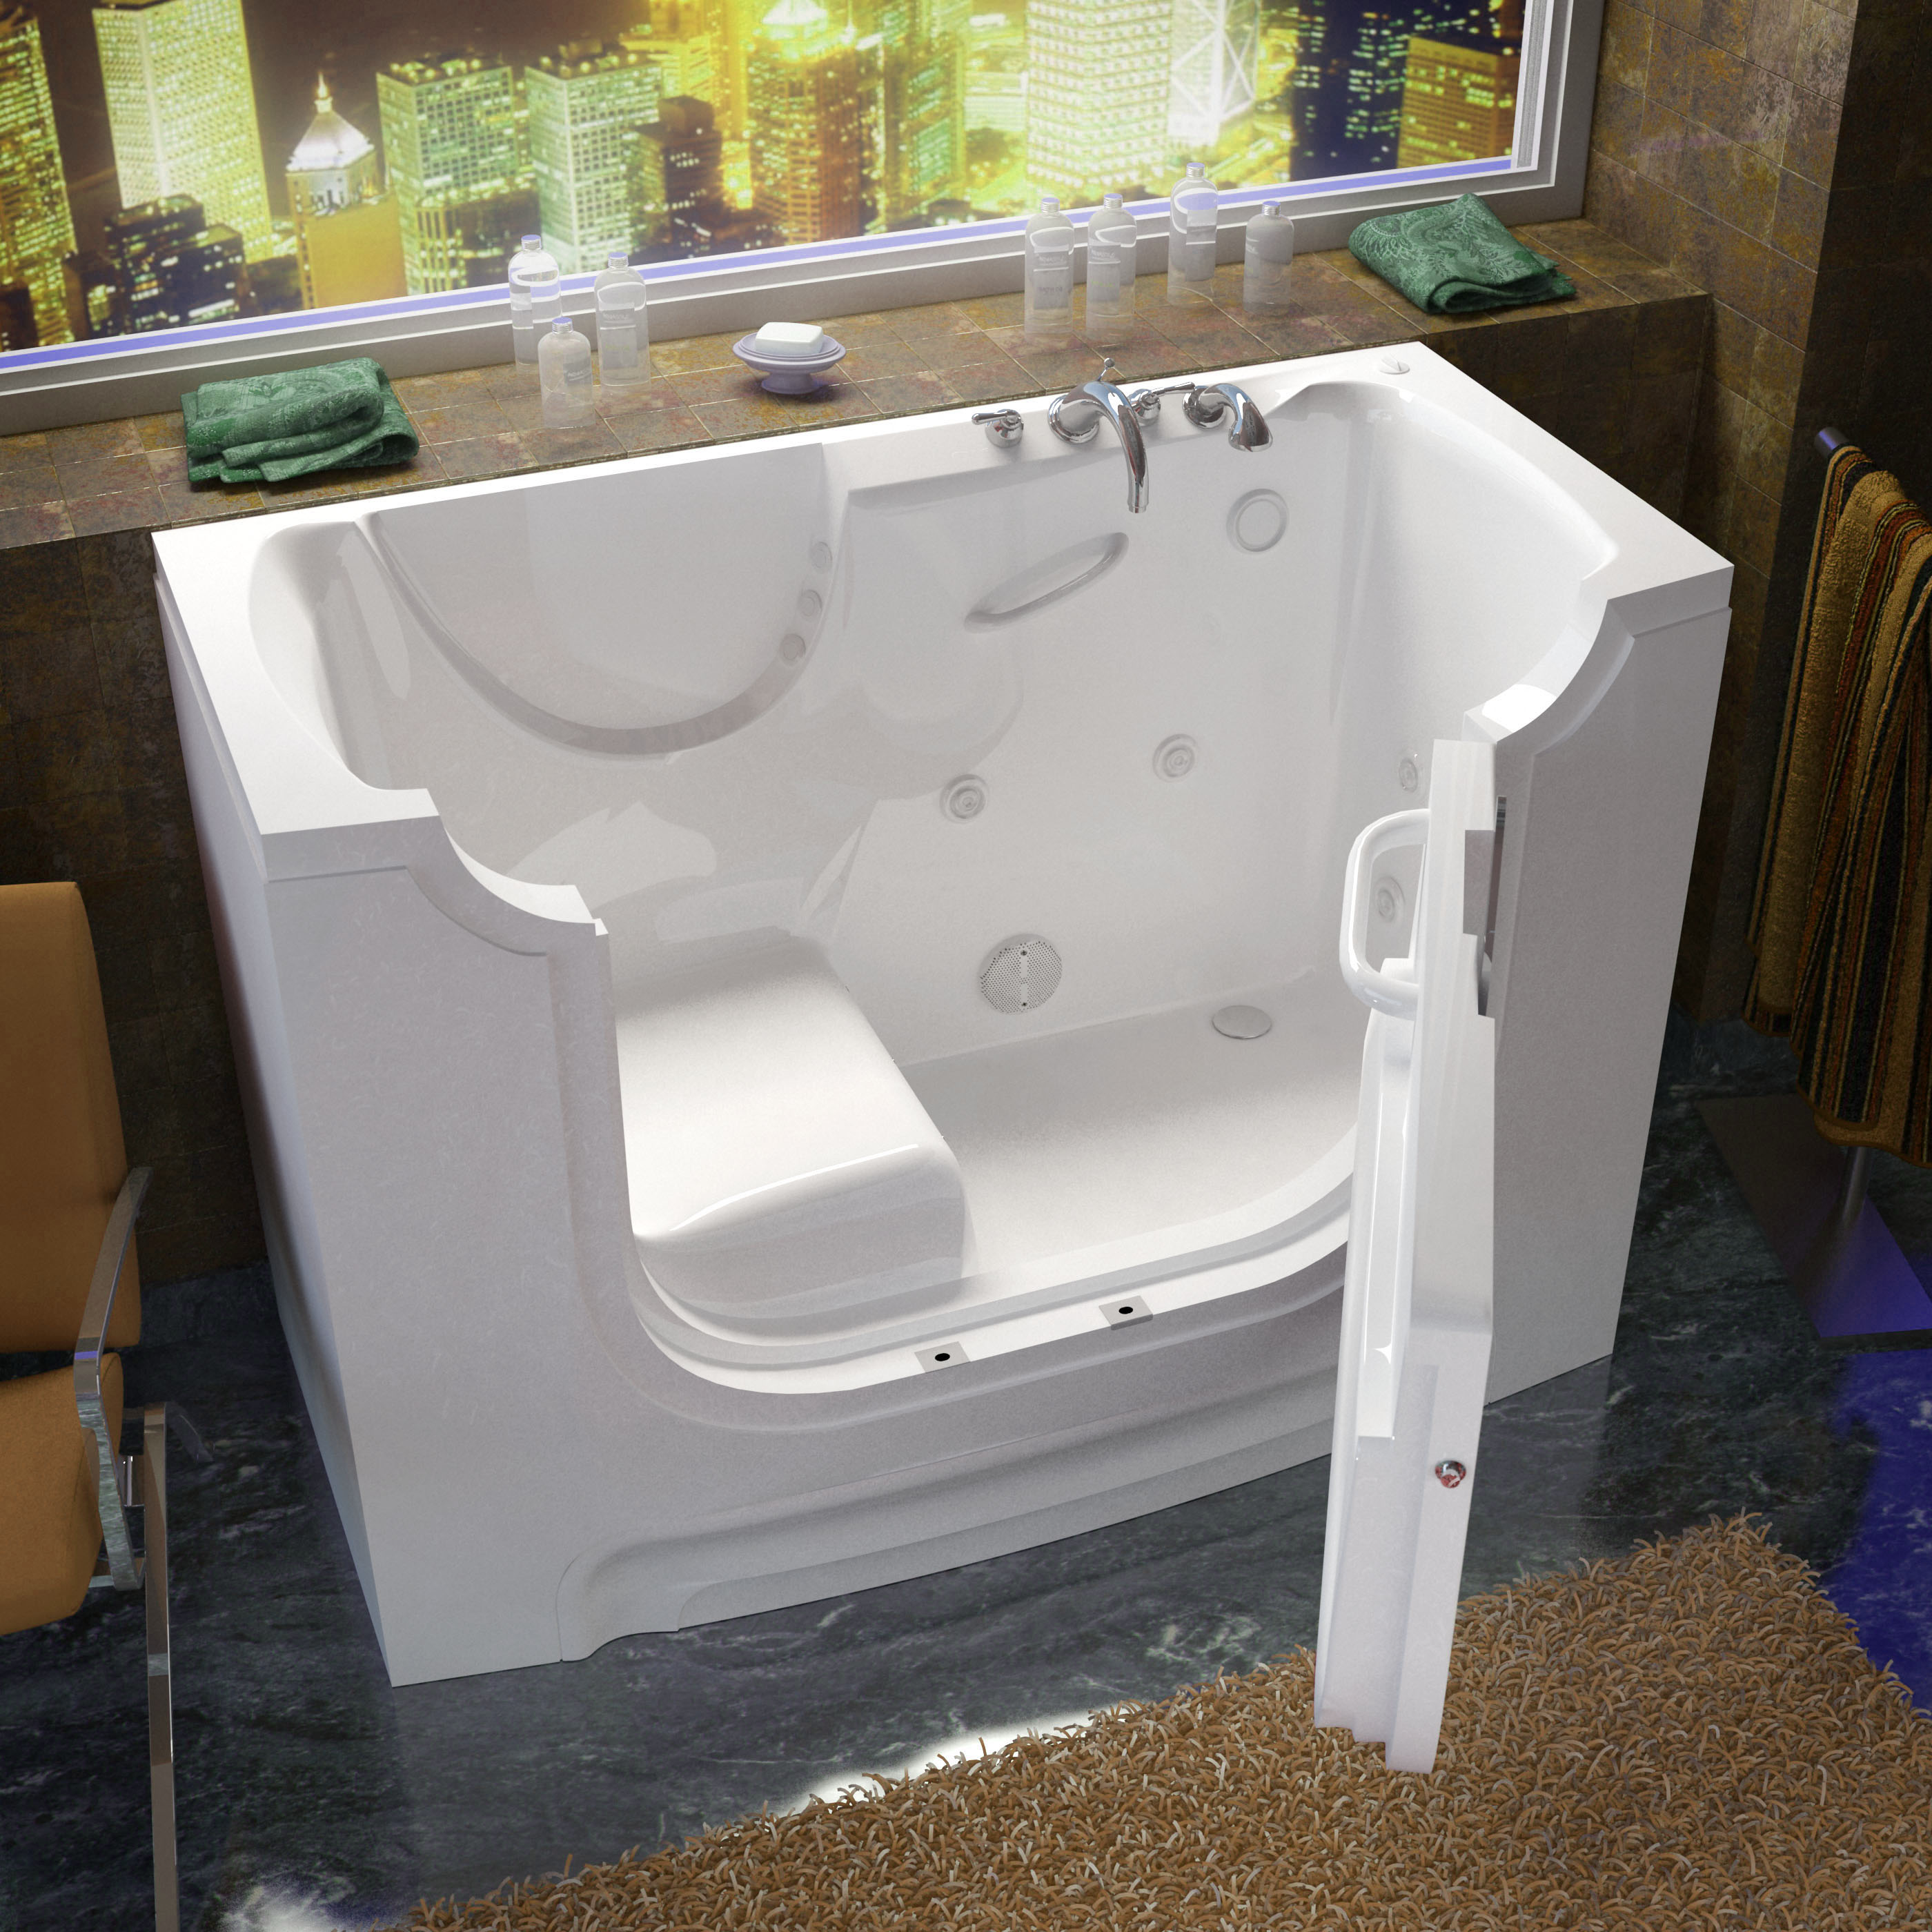 30x60 Right Drain White Whirlpool Jetted Wheelchair Accessible Walk-In Bathtub